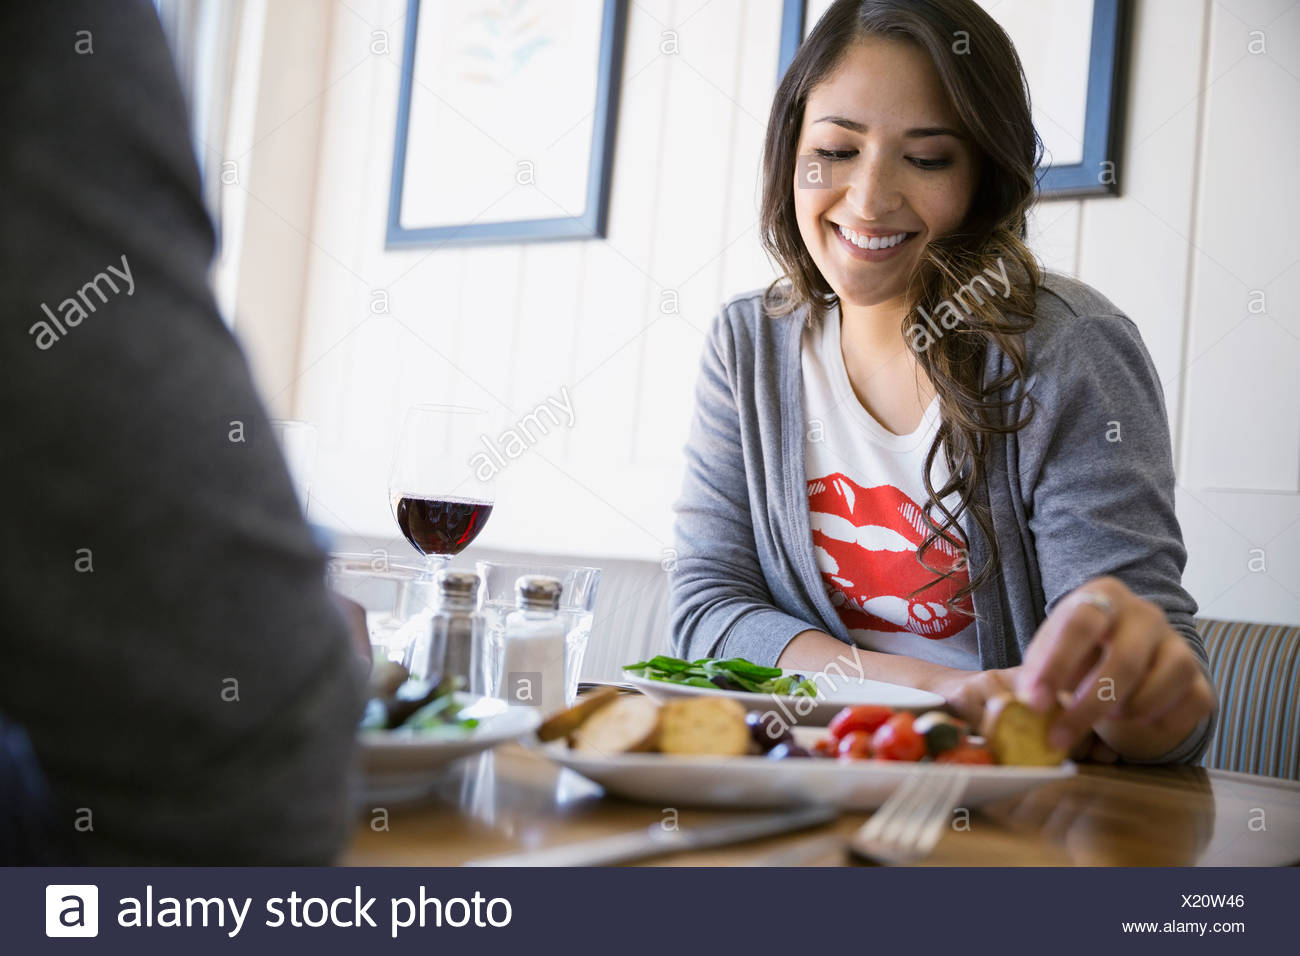 Woman eating appetizer at bistro table - Stock Image